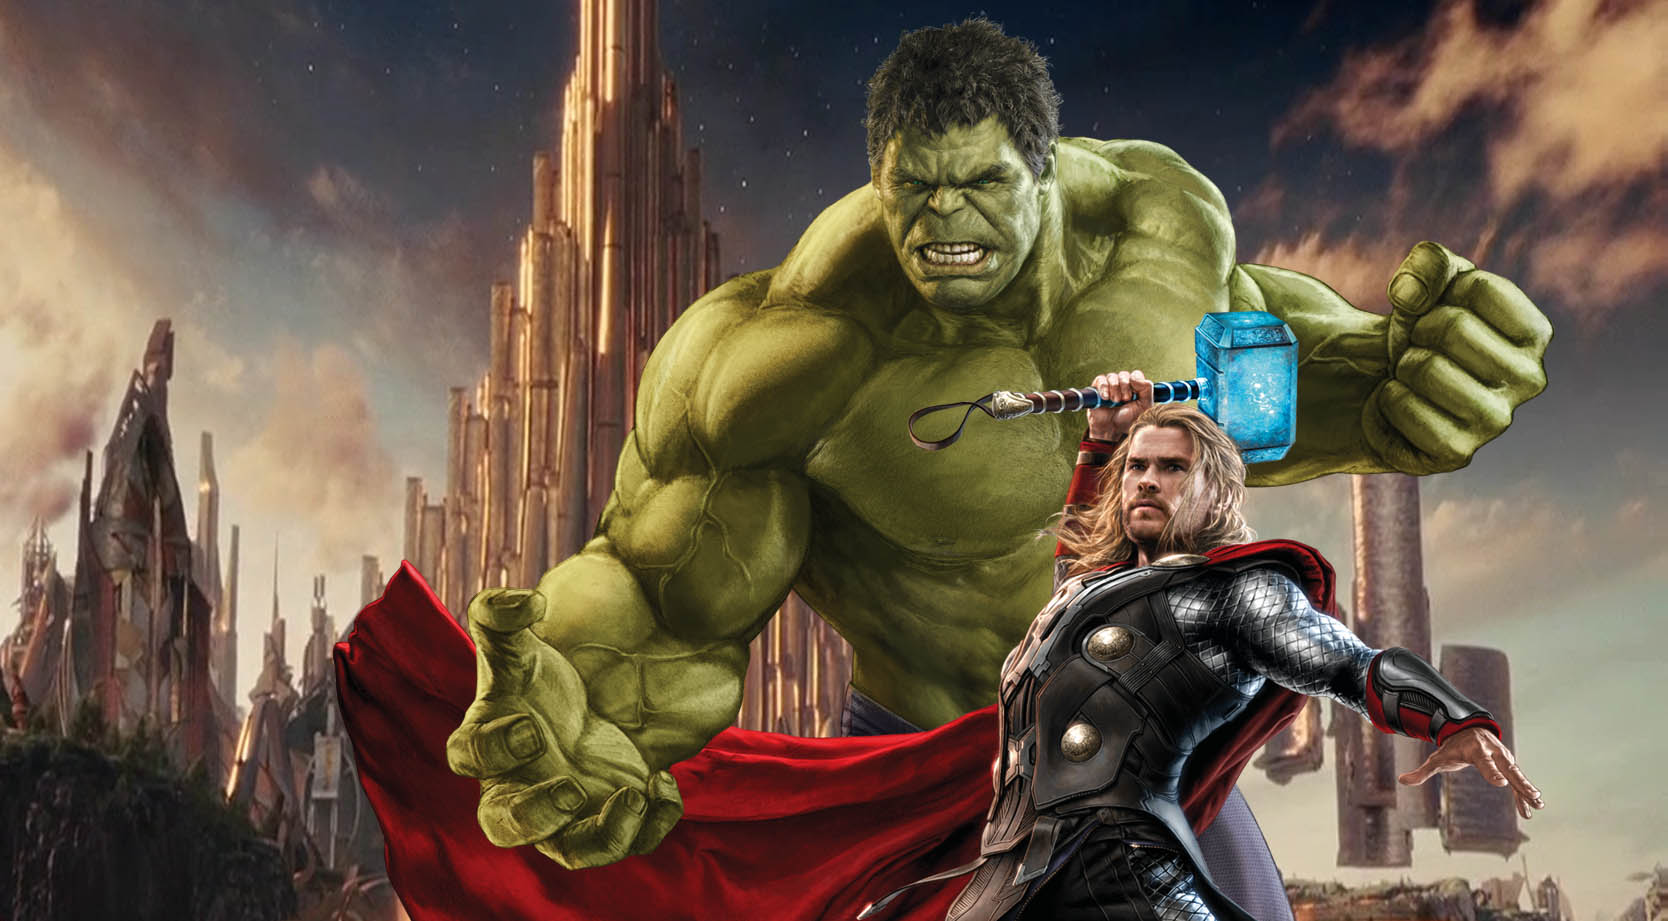 Thor: Ragnarok has today added Black List scribe Stephany Folsom. The film, which will feature the return of Chris Hemsworth's Thor, hits theaters in 2017.